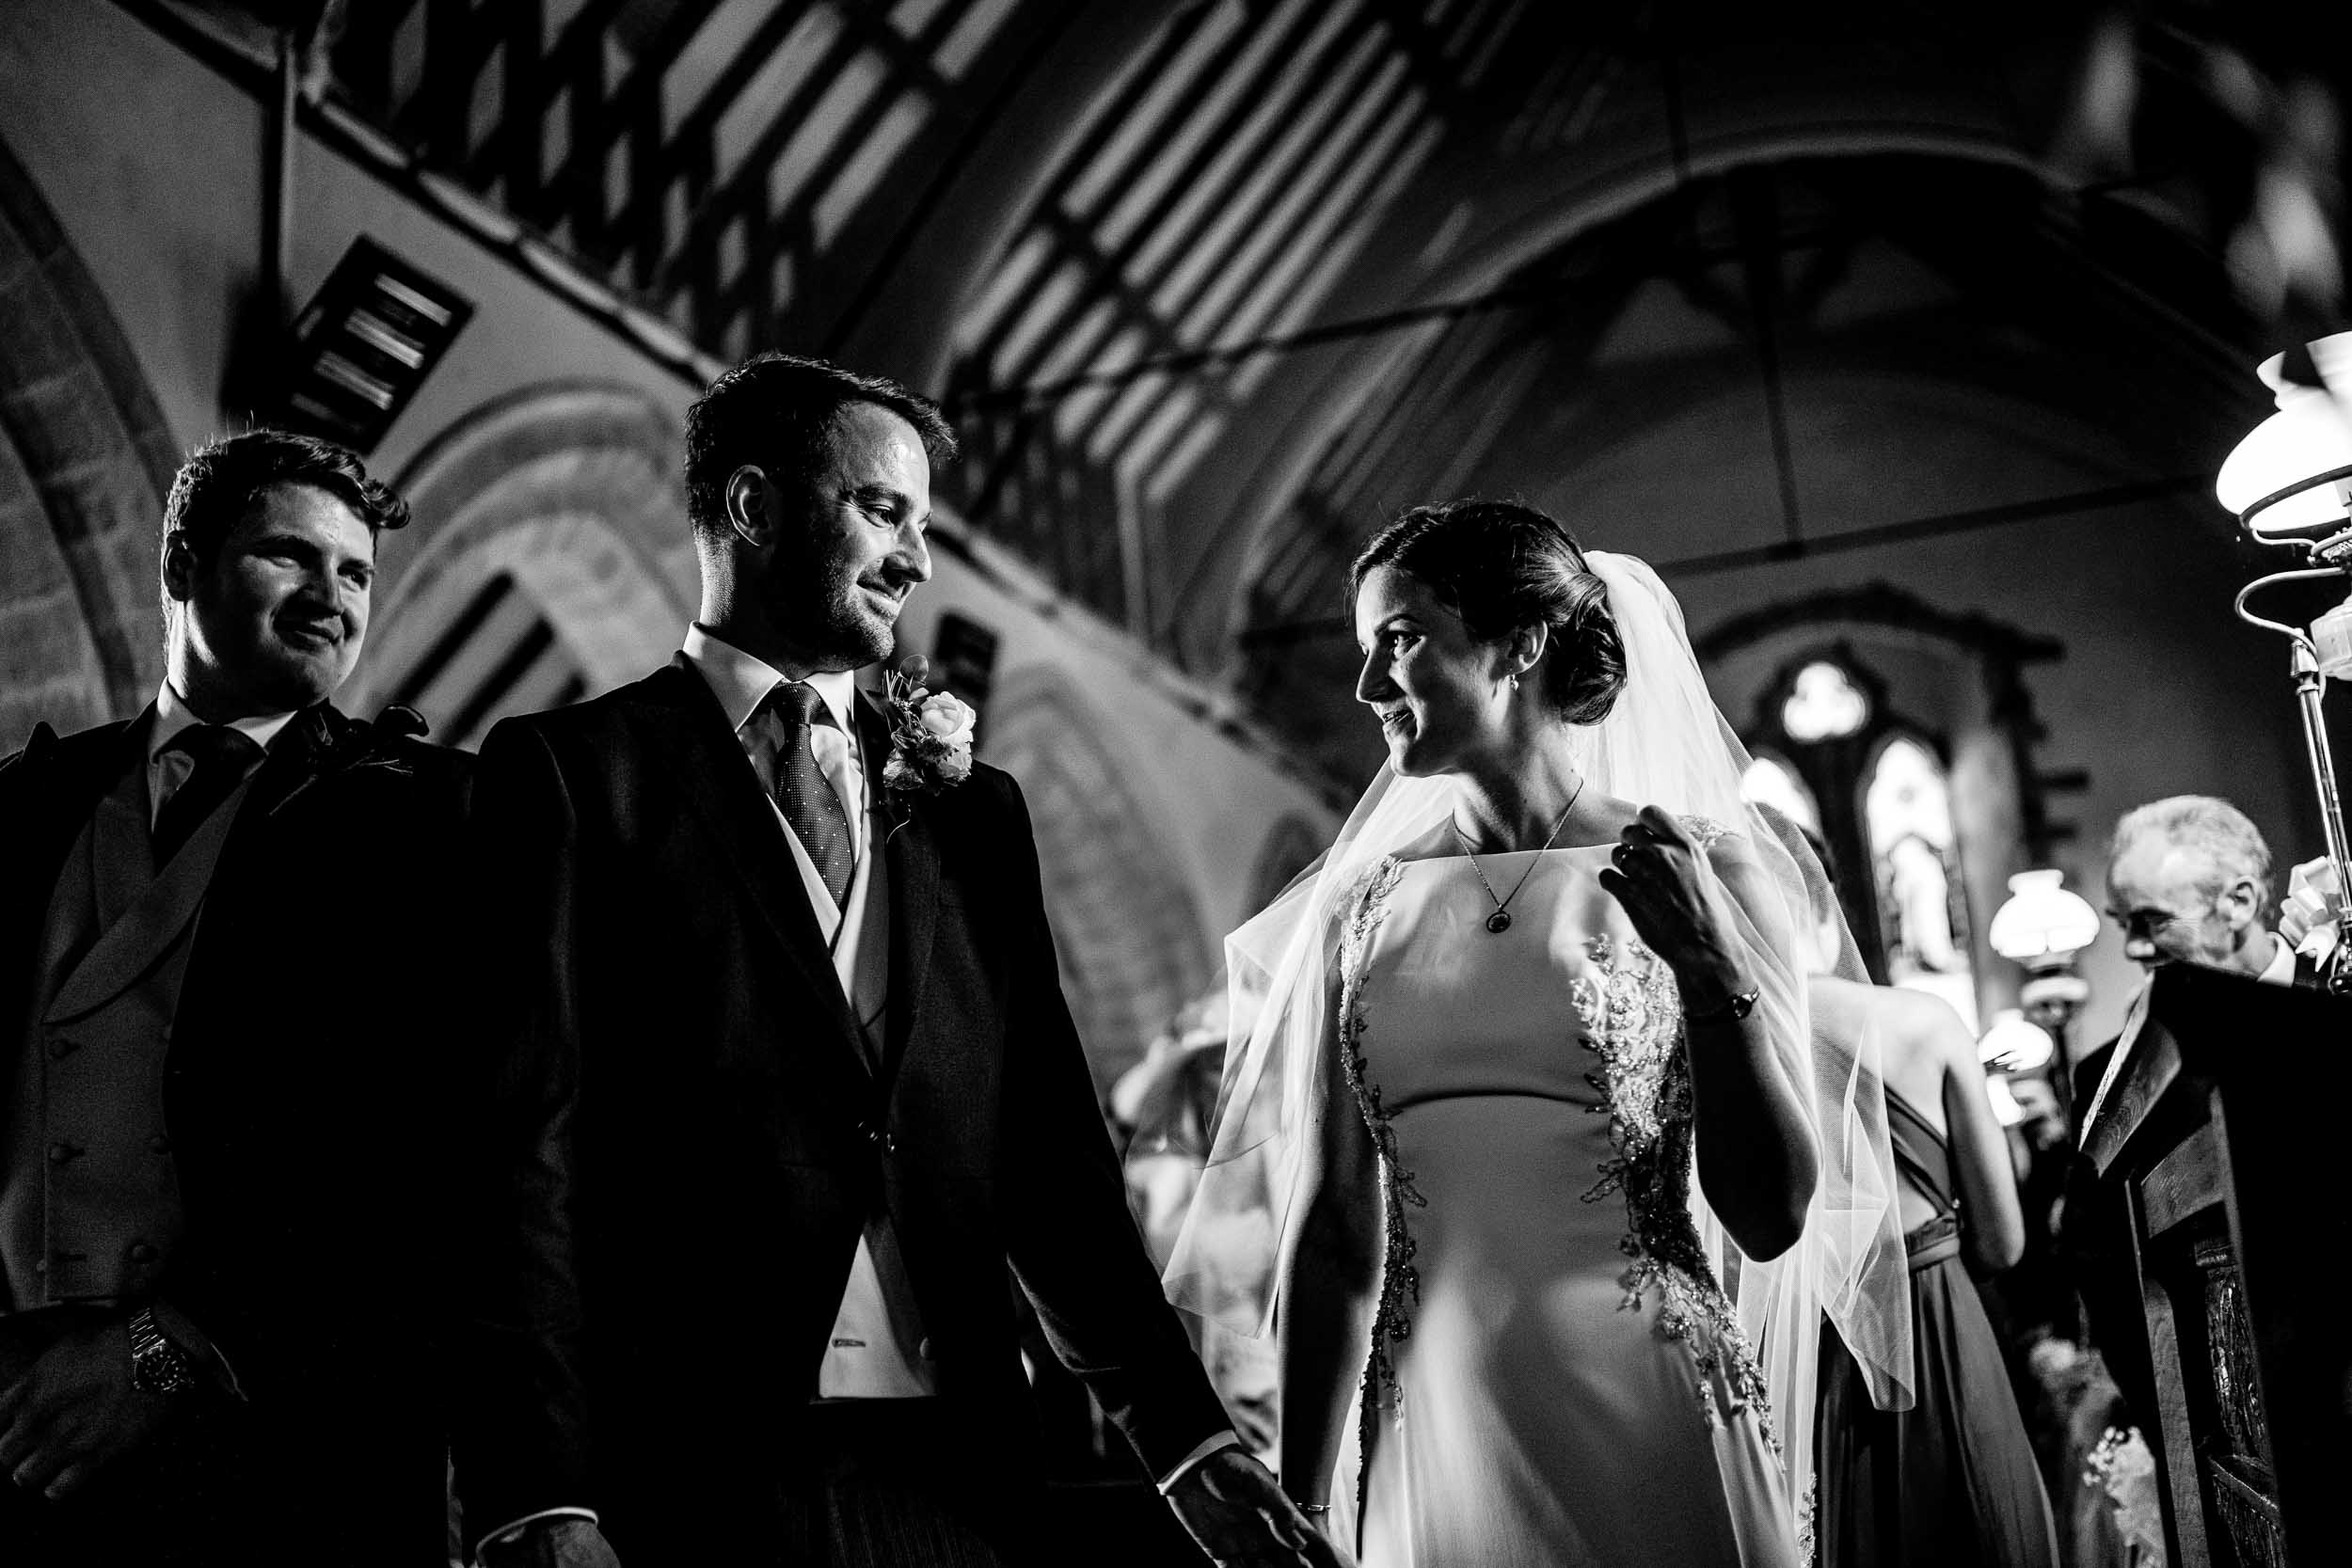 Herefordshire Wedding Photographers - Herford Farm House Wedding